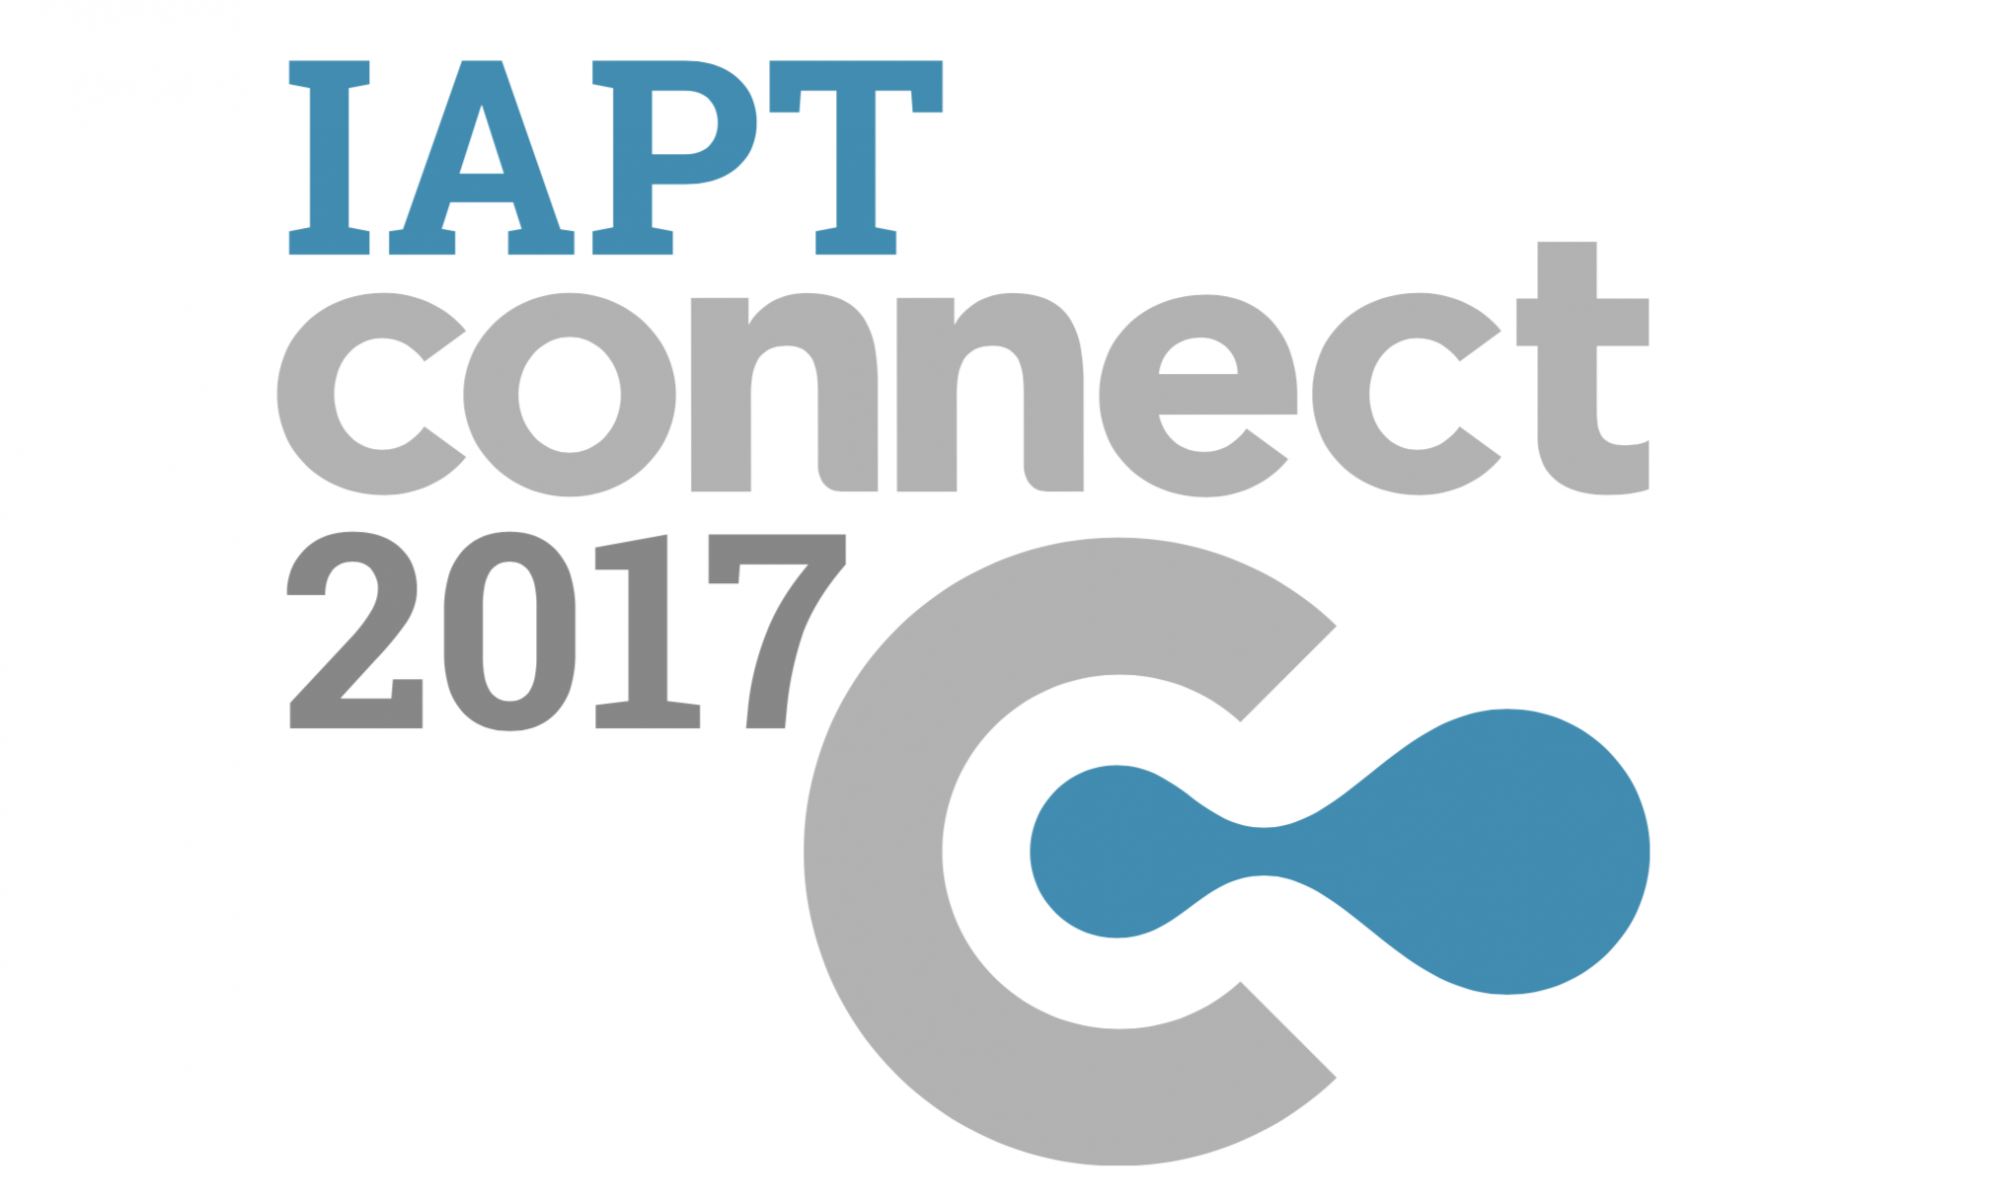 #IAPTconnect17 Annual Mayden IAPT conference, London, Sep 2017